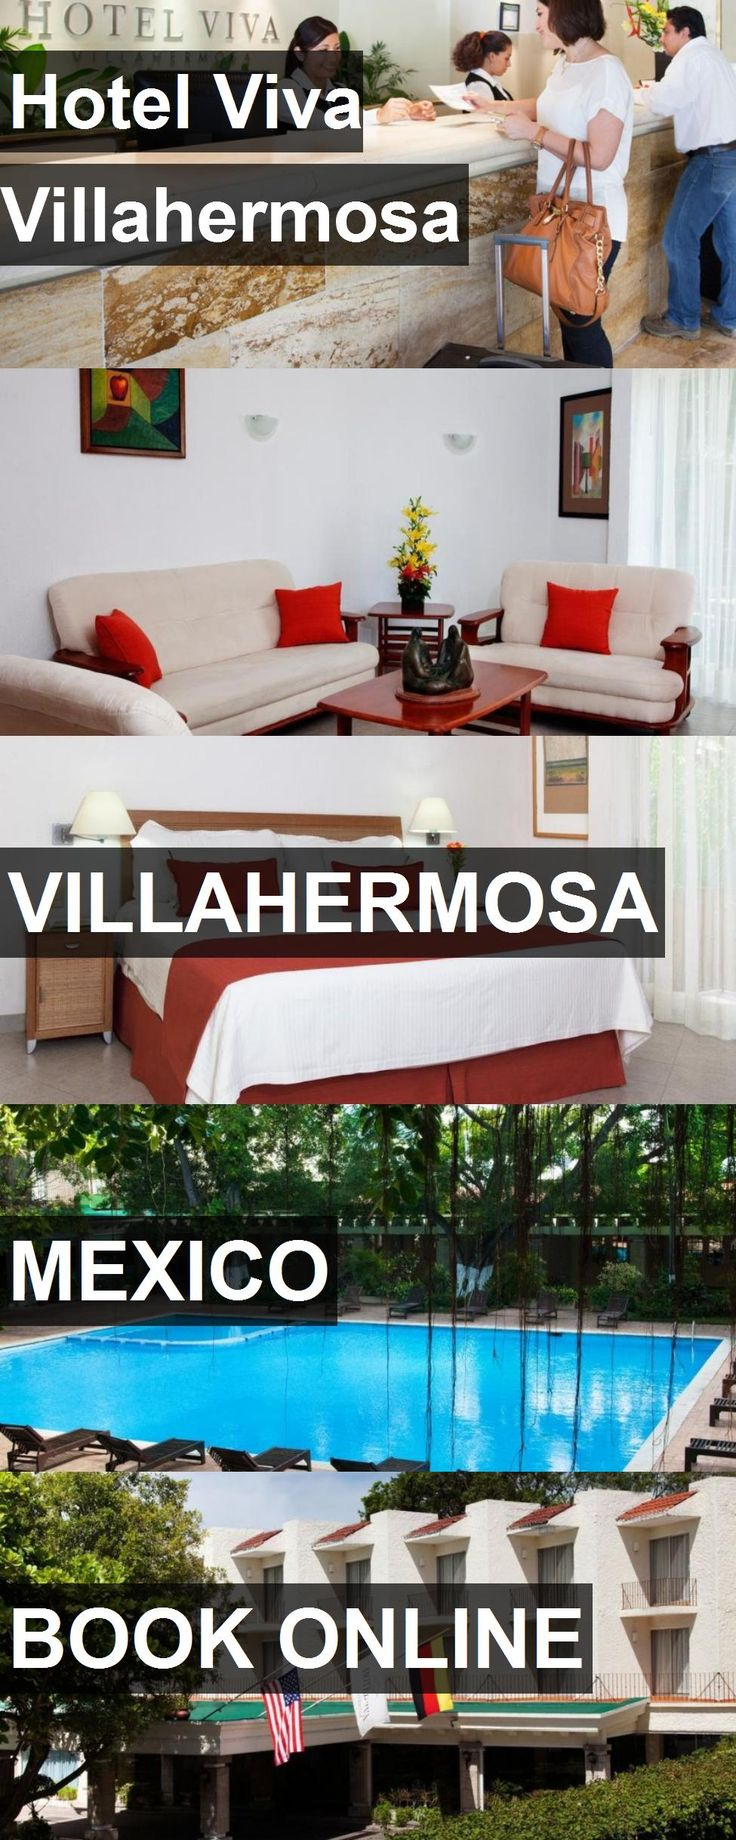 Hotel Viva Villahermosa in Villahermosa, Mexico. For more information, photos, reviews and best prices please follow the link. #Mexico #Villahermosa #travel #vacation #hotel